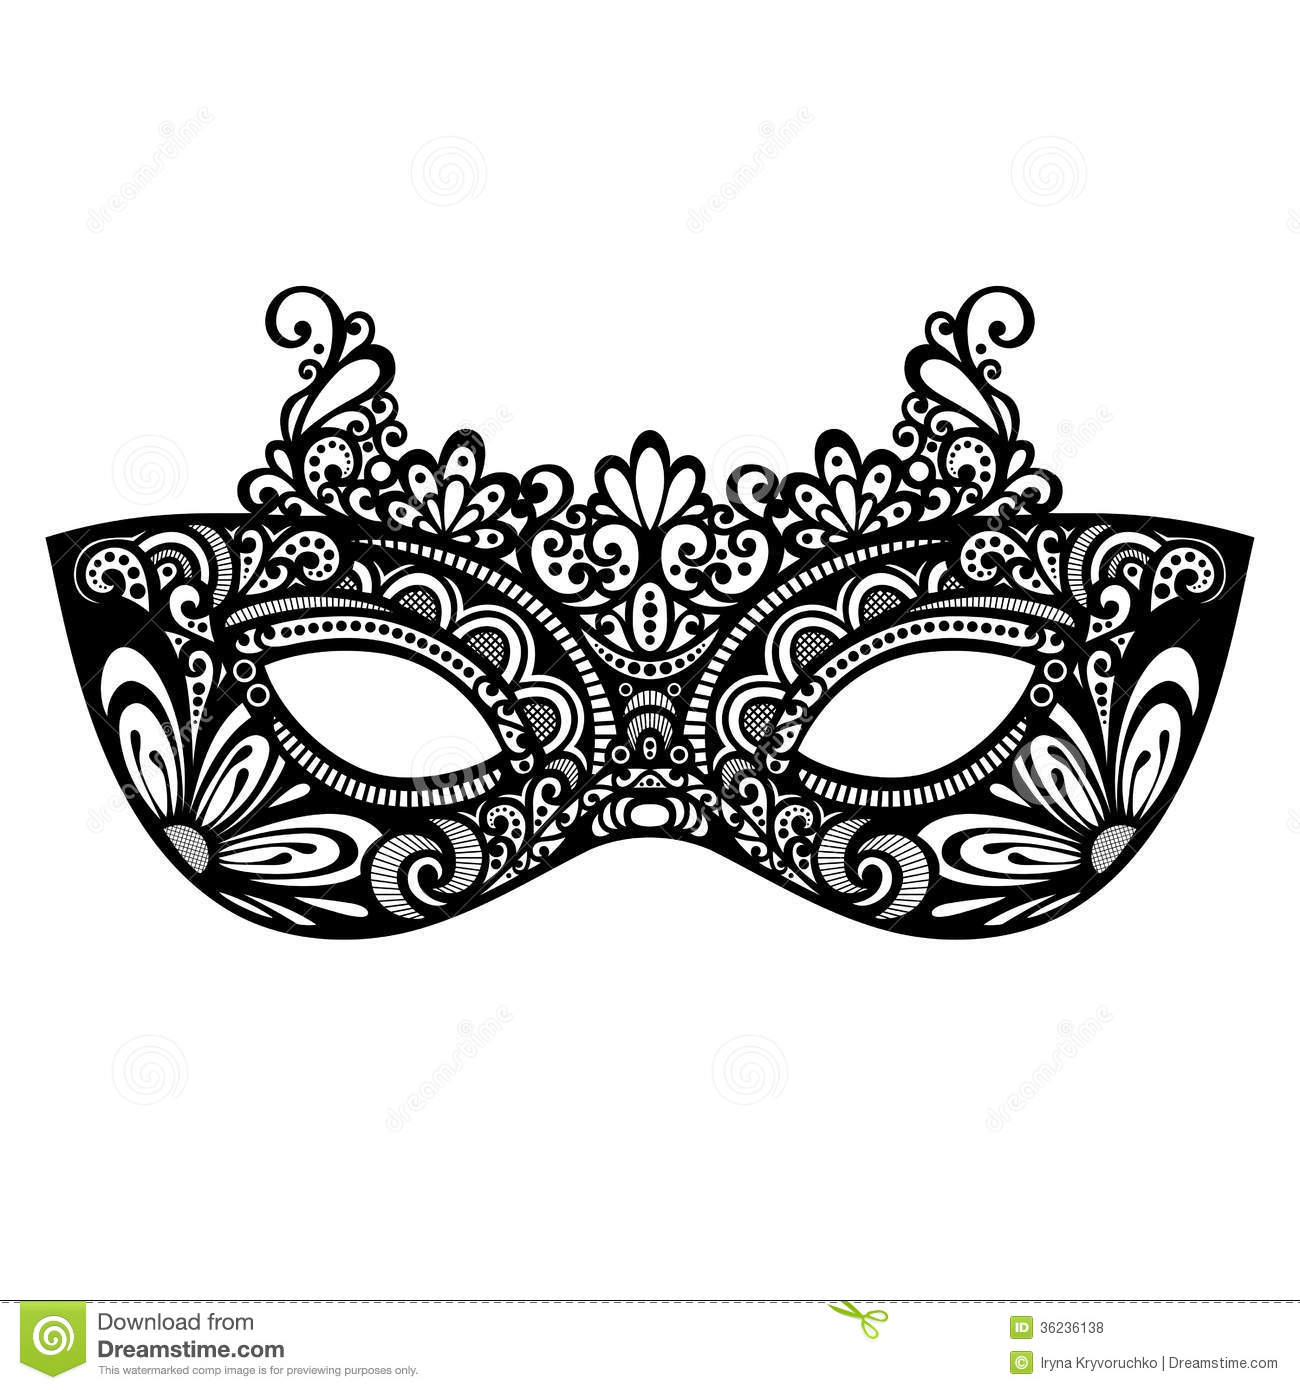 Clip Art Masquerade Clipart masquerade mask clipart kid royalty free stock photos image 36236138